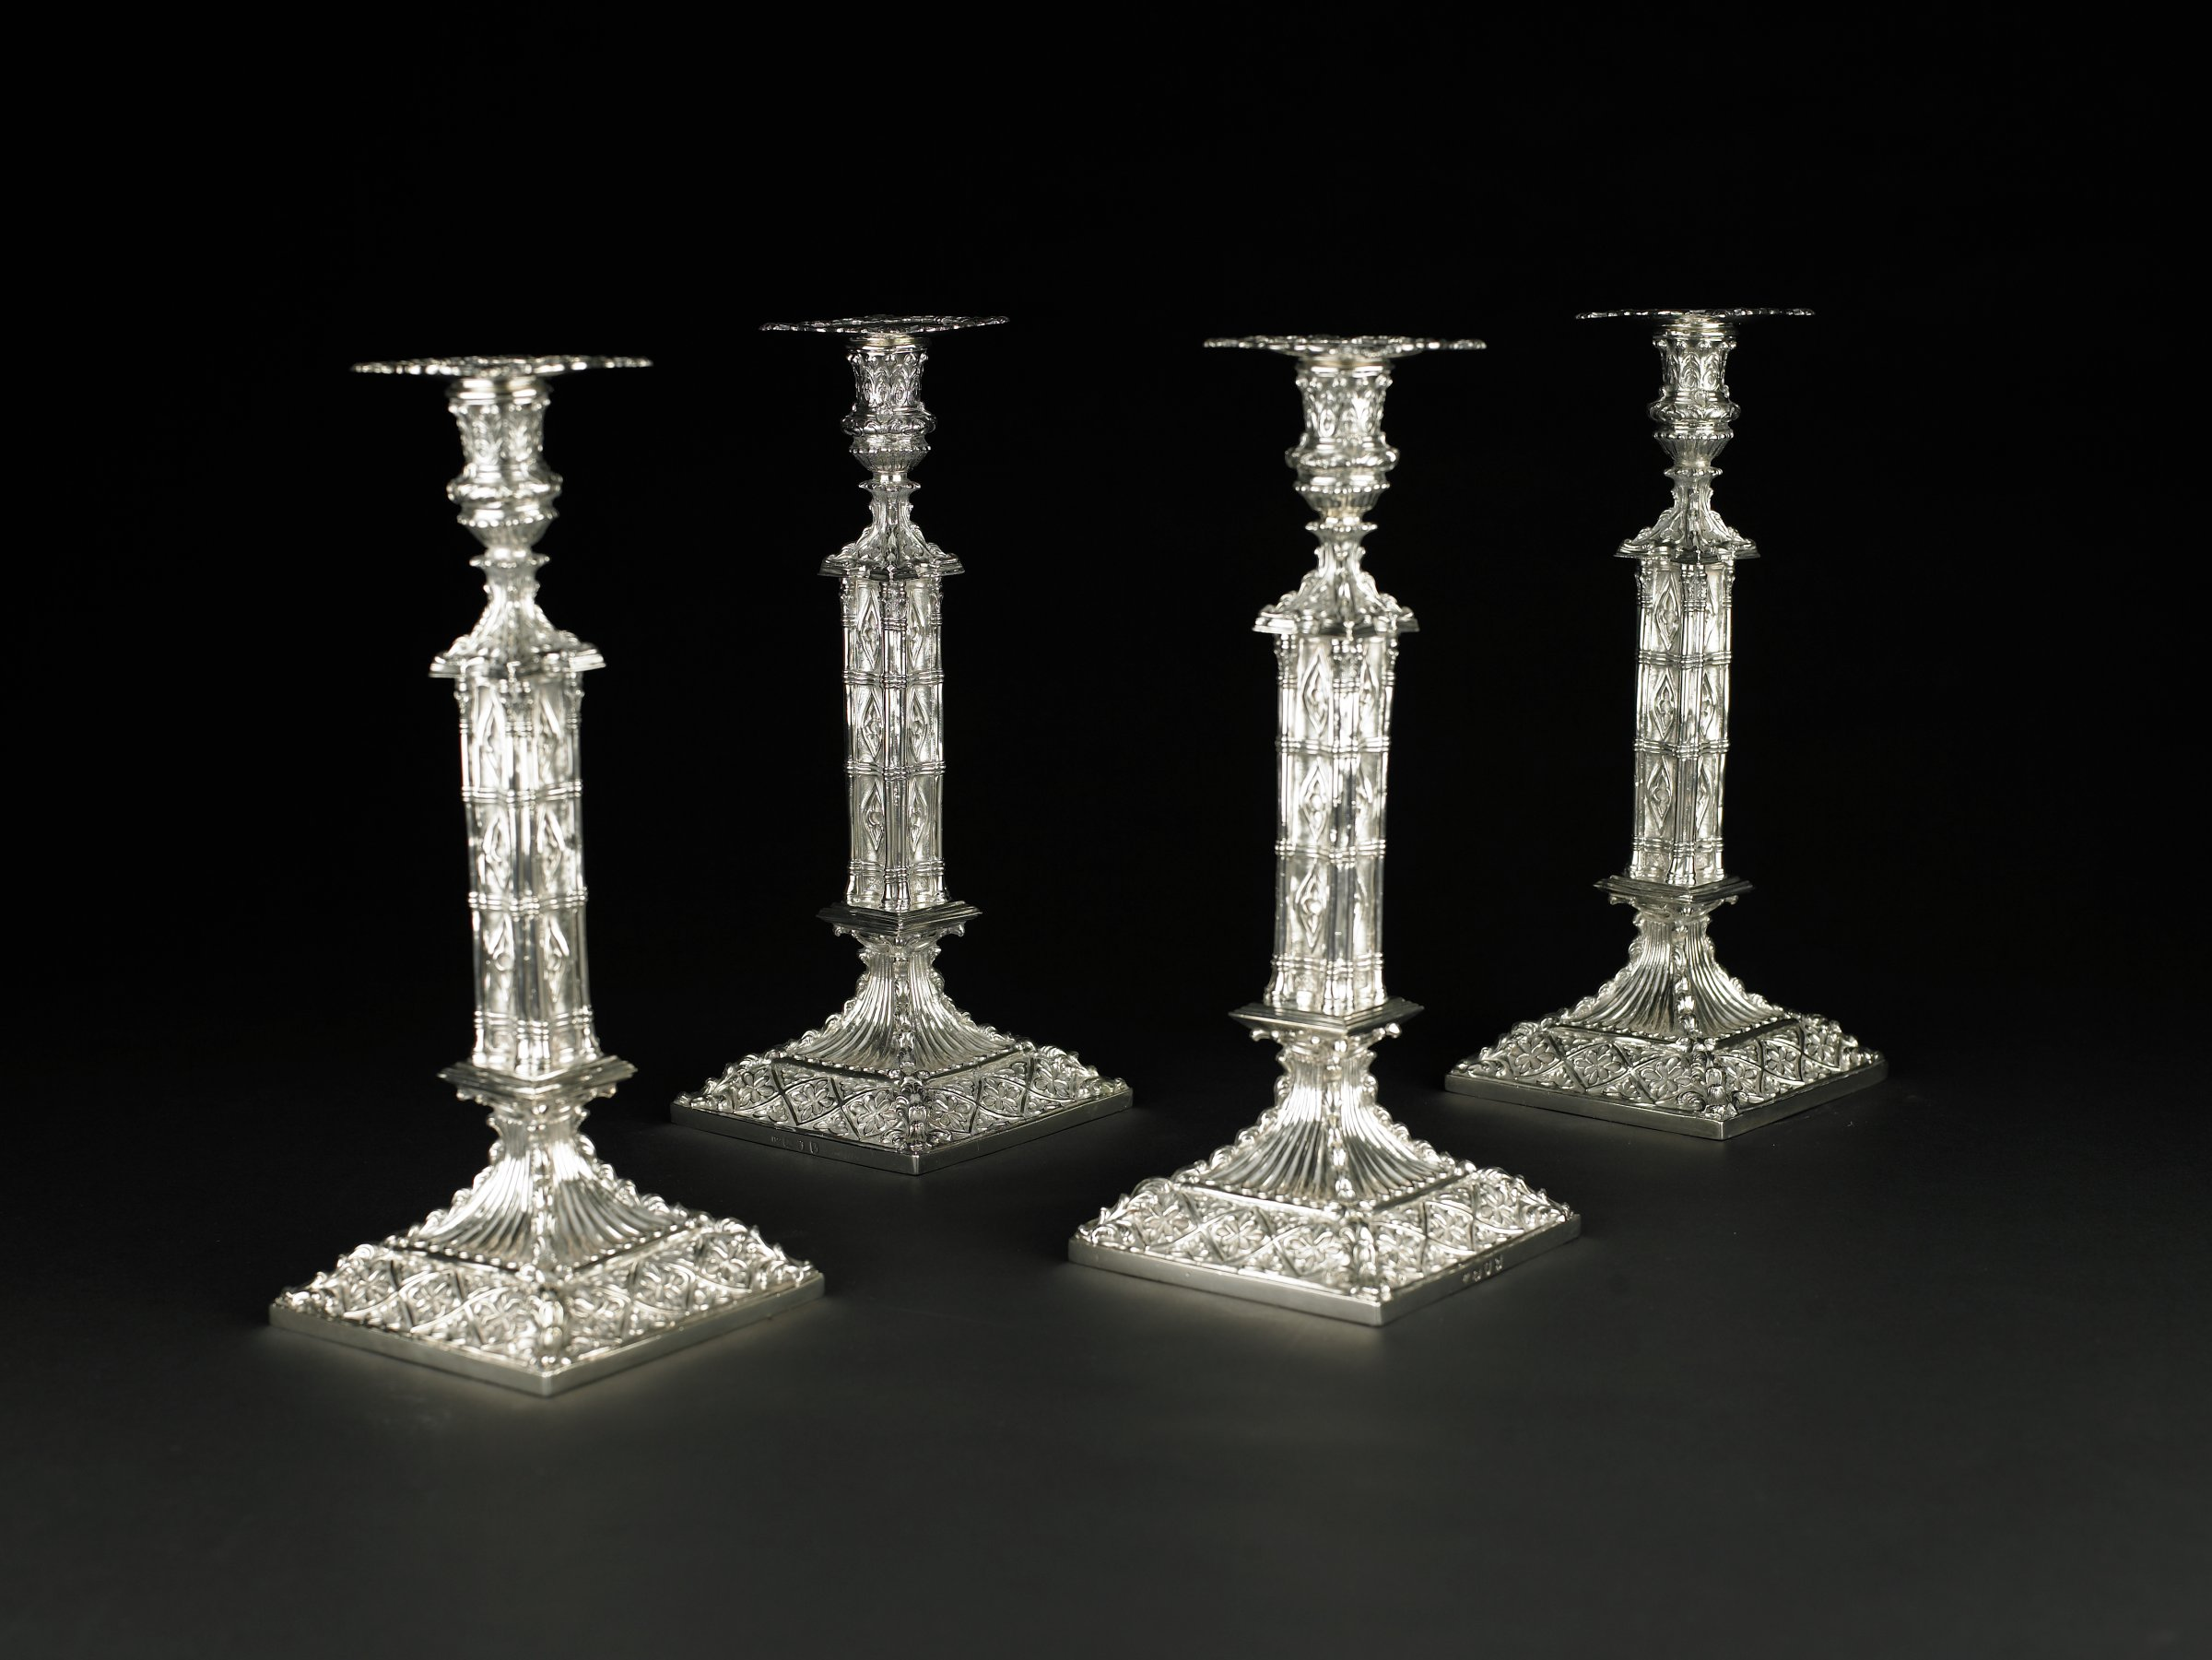 Set of four, tall, sterling silver candlesticks architectural in form and neo-Gothic/neoclassical in style, each with a large, square base decorated with a diaper pattern within which are stylized flowers raised against a stippled ground, the corners are covered with upwardly scrolling acanthus leaves; from the base the stick rests on a fluted foot upon which sits a square pedestal from which extends the actual stick, which is composed of two slender columns at each edge with acanthus leaves at top, all bound by three sets of three bands each; between the columns are quatrefoils; the finial is in the form of a footed urn, the foot with four individual trefoils between acanthus leaves, the urn is also decorated with trefoils and stylized acanthus leaves, and holds a square, removable bobeche with pierced corners and scrollwork; on three of the four bobeches is an engraved crest: an eagle with outstretched wings atop a crown set with feathers.